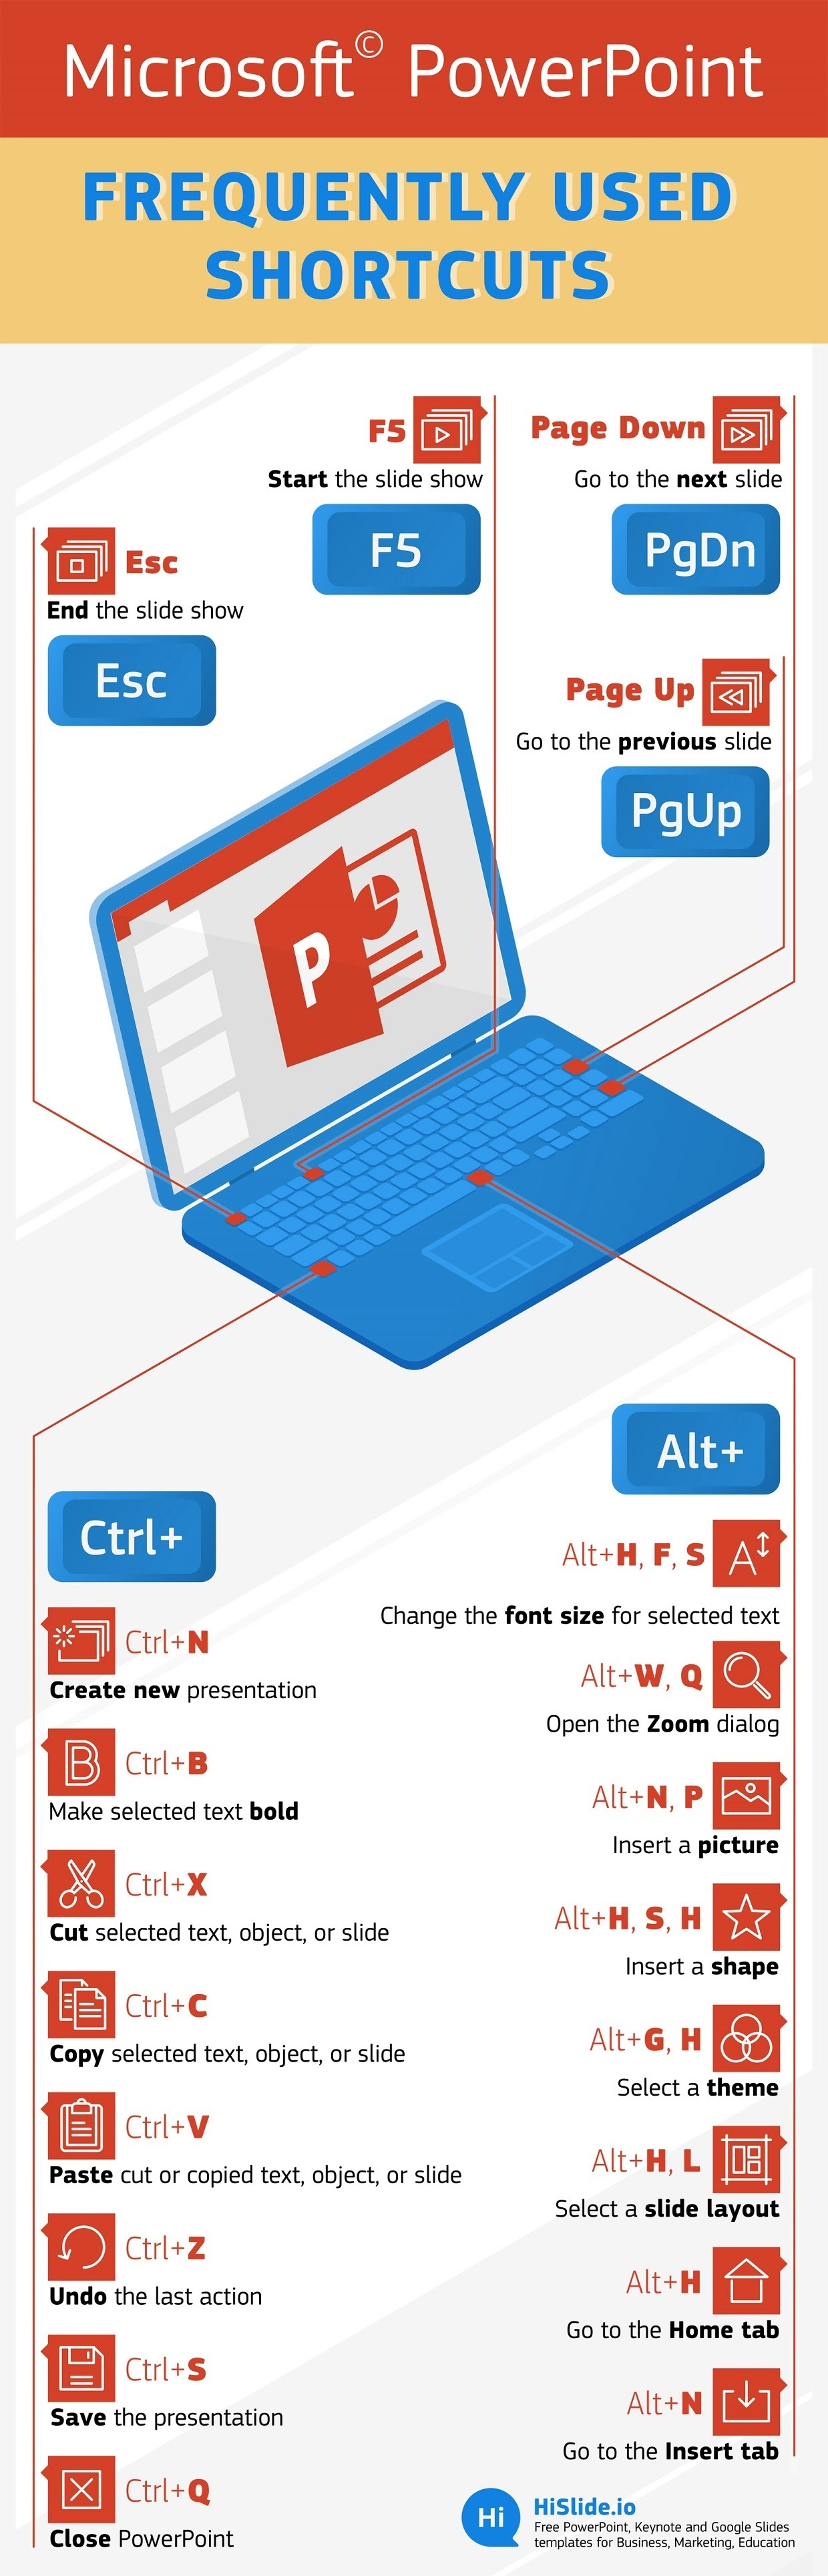 3 Reasons to Use PowerPoint Shortcuts while Creating Digital Projects #infographic #Microsoft #Powerpoint